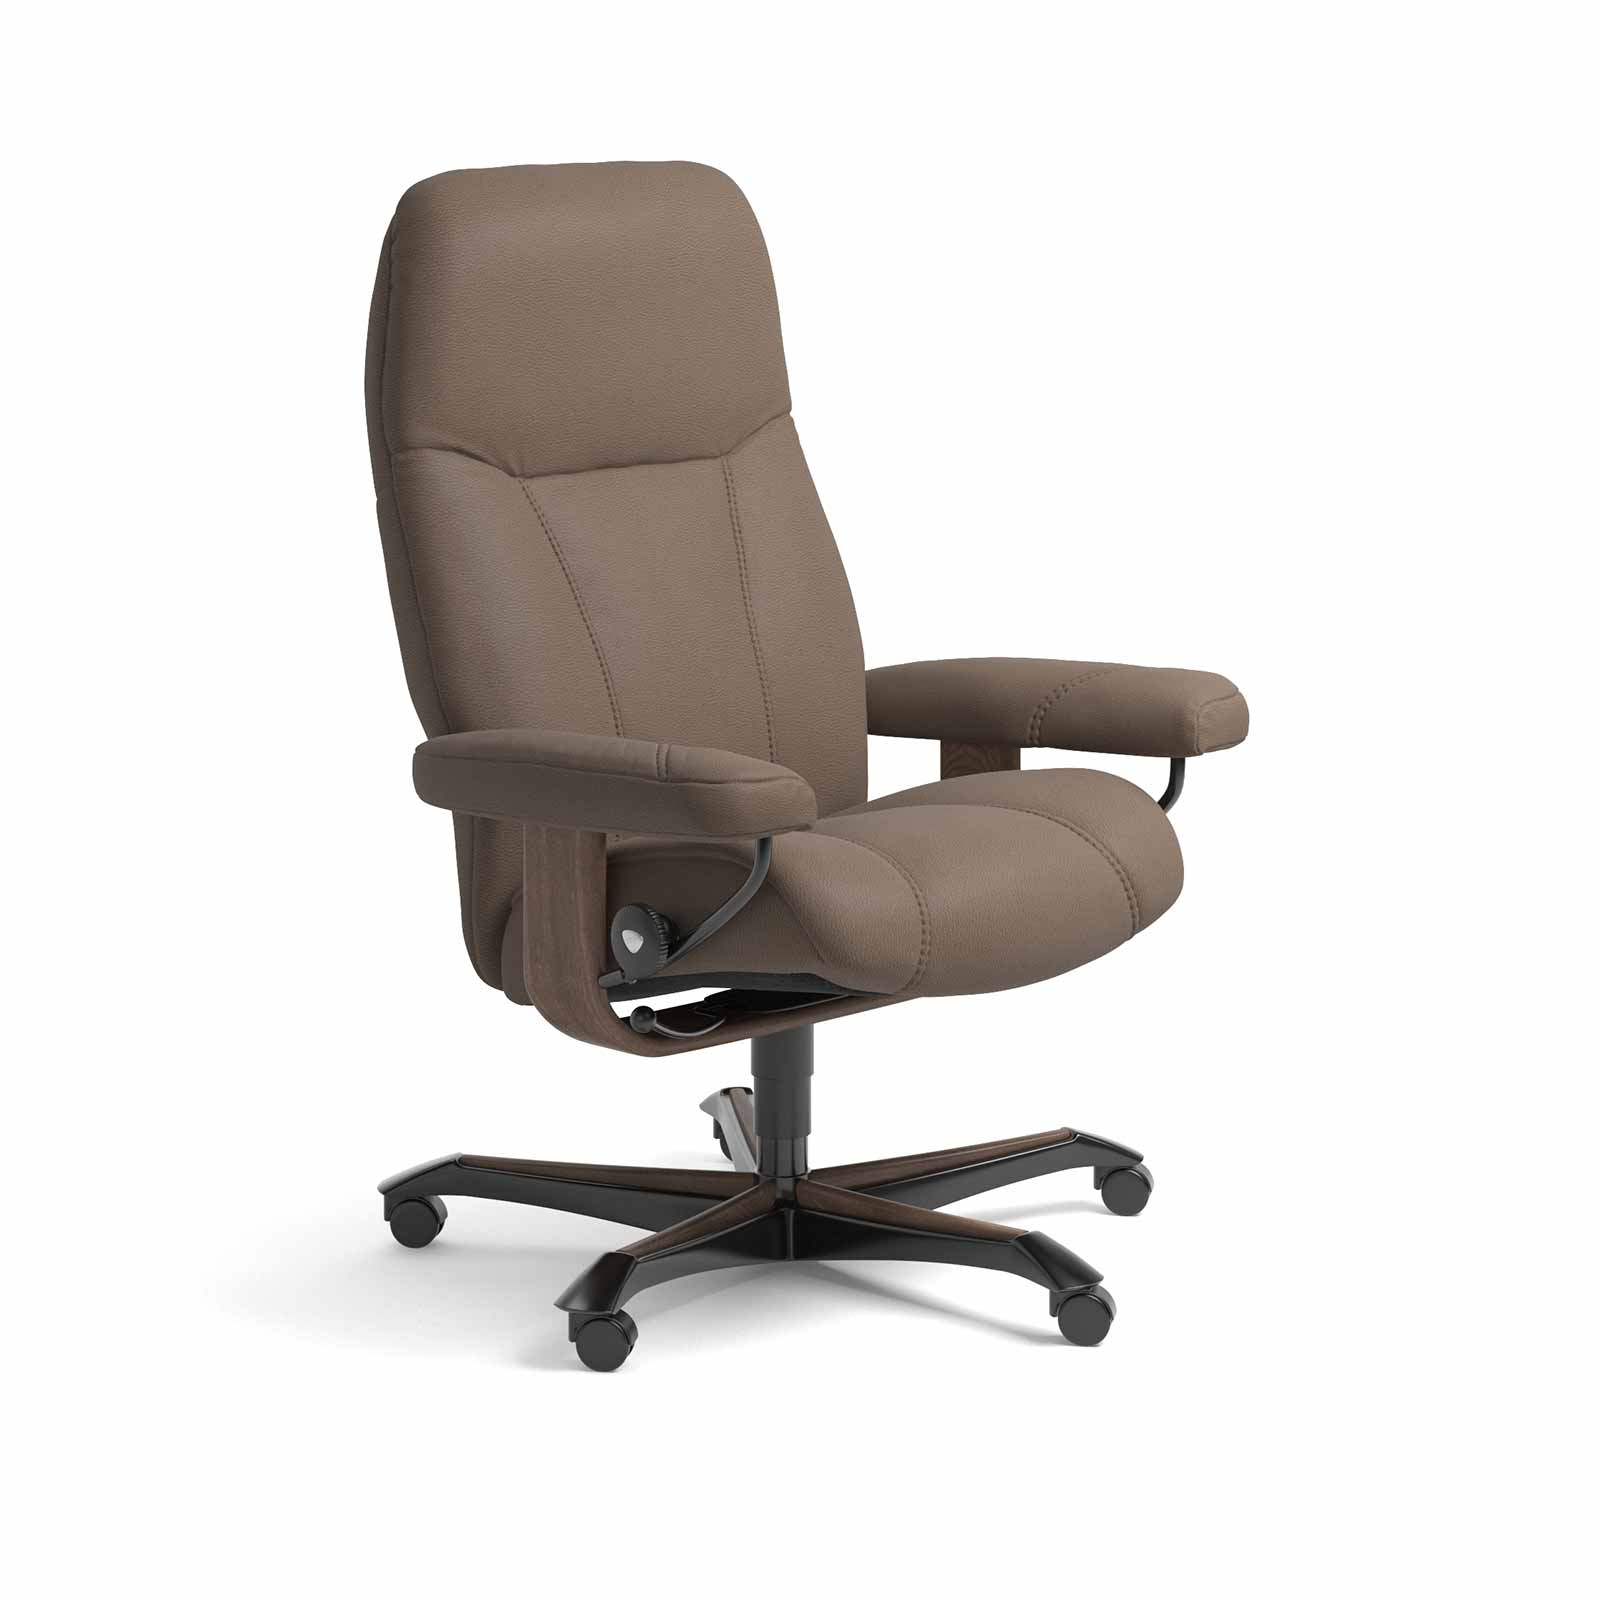 Stressless Sessel Stoffbezug Stressless Sessel Consul Home Office Batick Mole Stressless